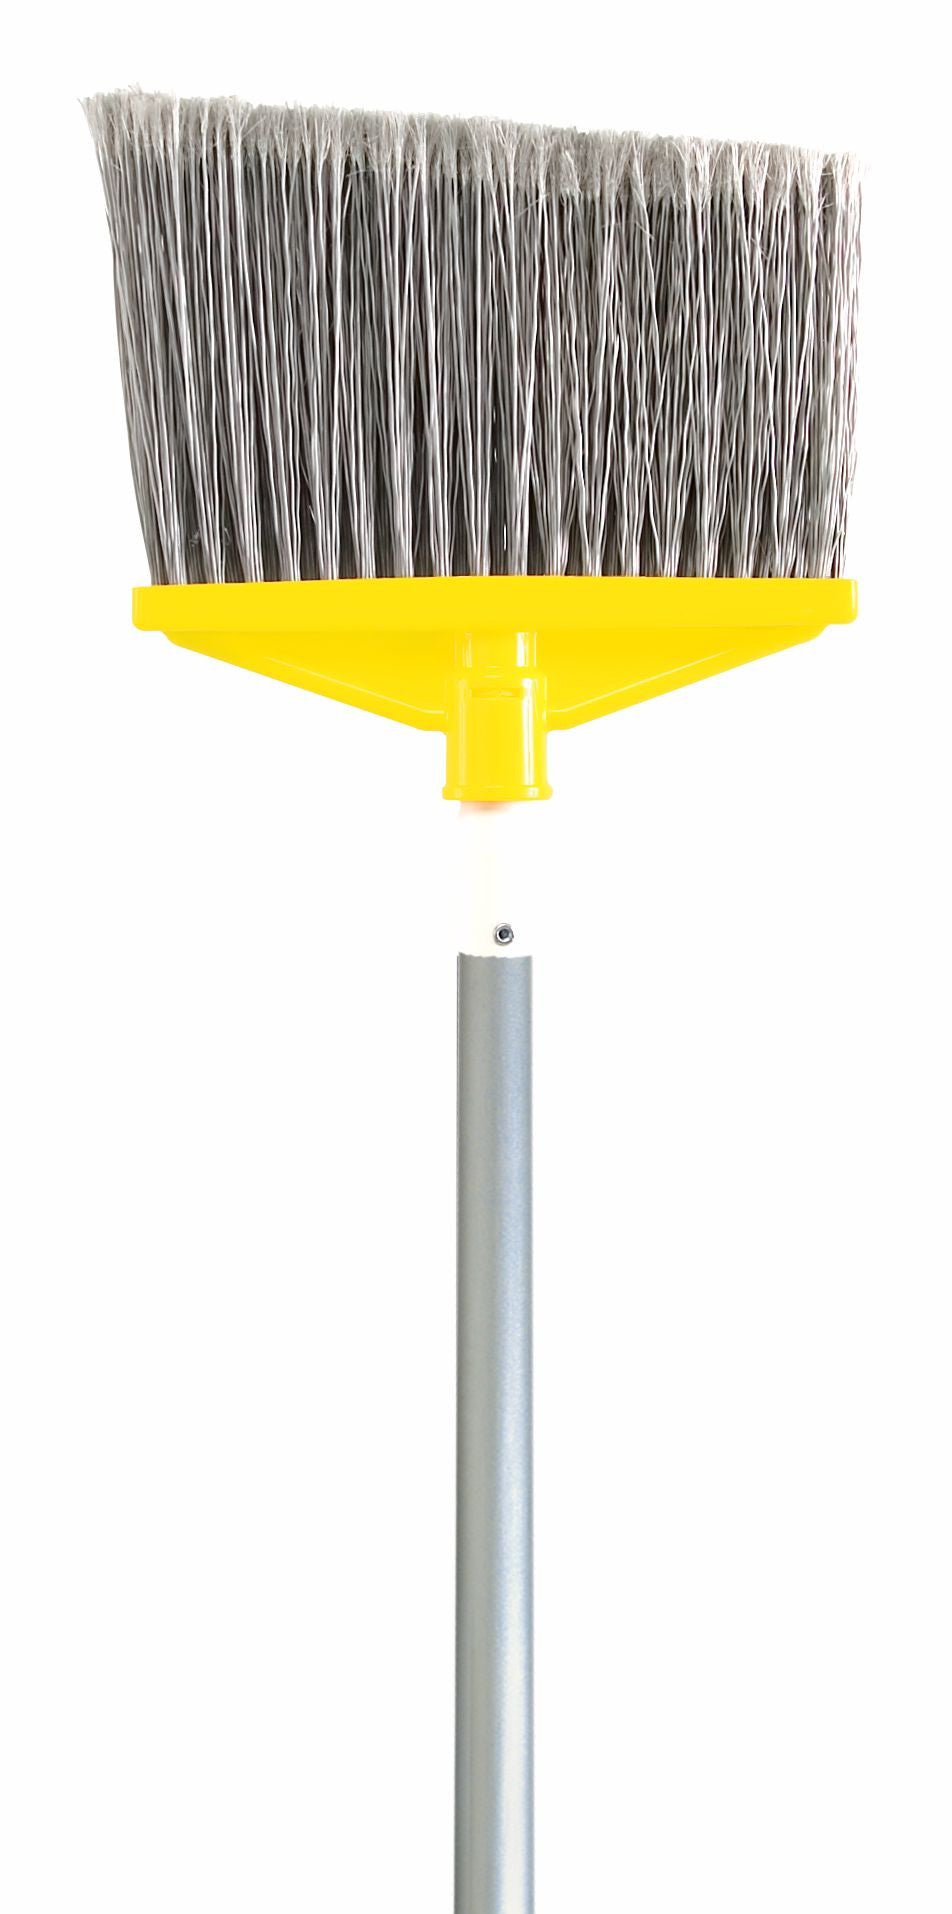 "FLAGGED BROOM 1"" DIA ALUM HANDLE"